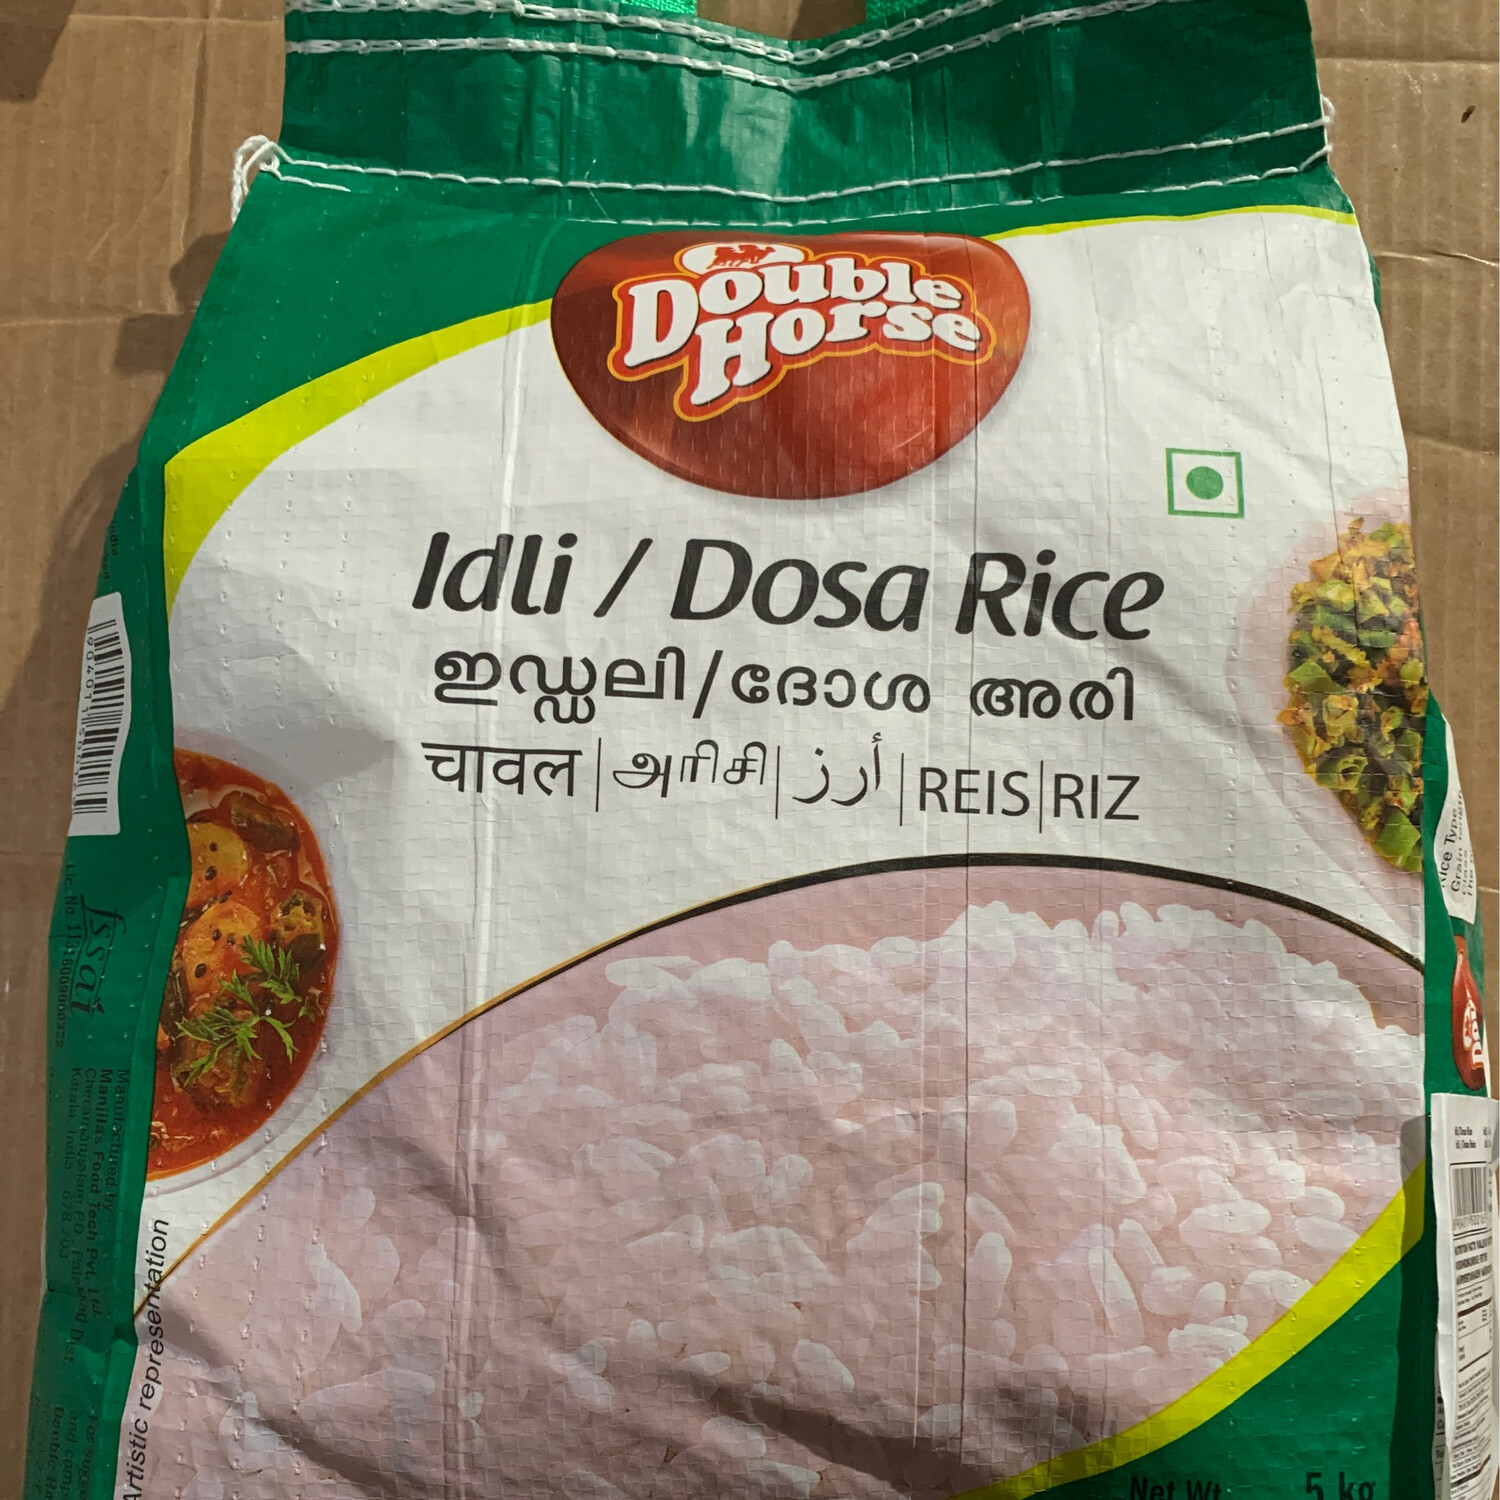 DOUBLE HORSE IDLI/ DOSA RICE 5KG